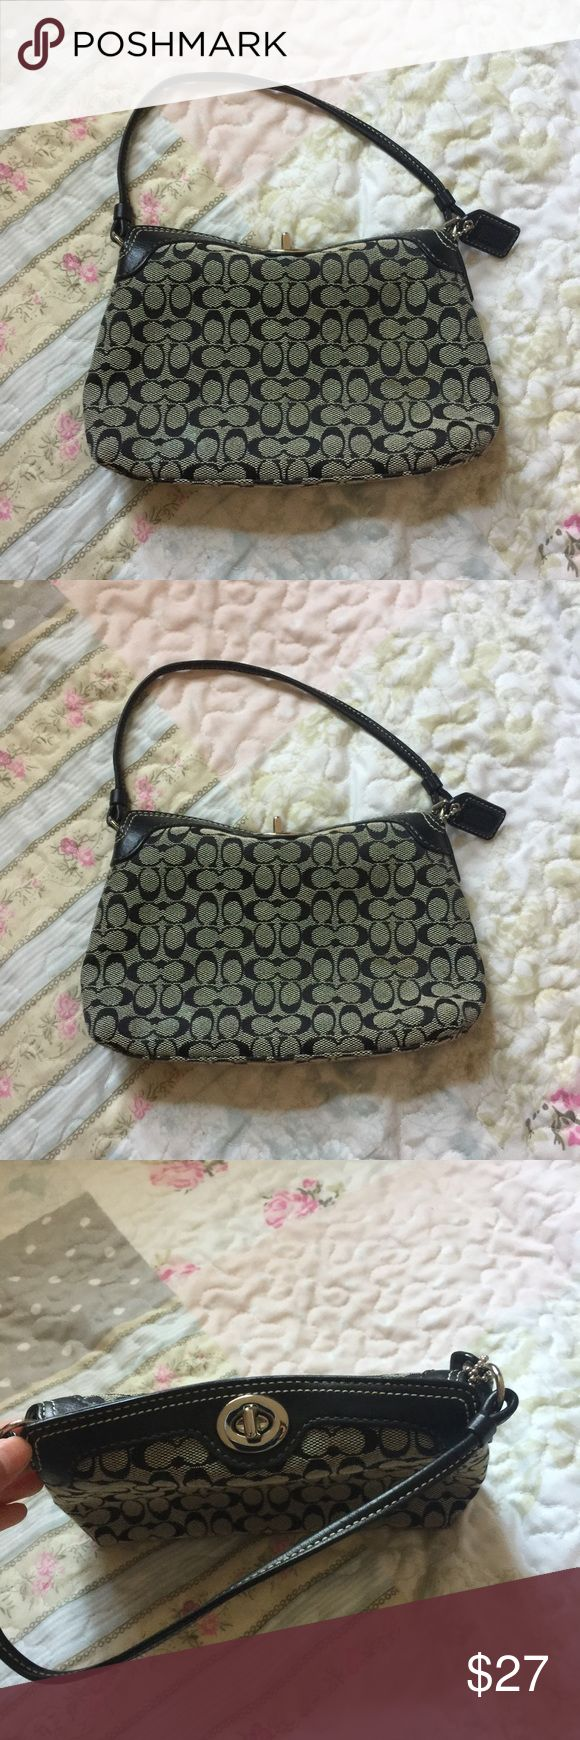 Coach mini hand bag Cute black and gray coach mini hand bag, great for a night out or even for a day look. Perfect accessory to add on to any outfit! Can fit a iPhone 6+ and 7+ Coach Bags Mini Bags